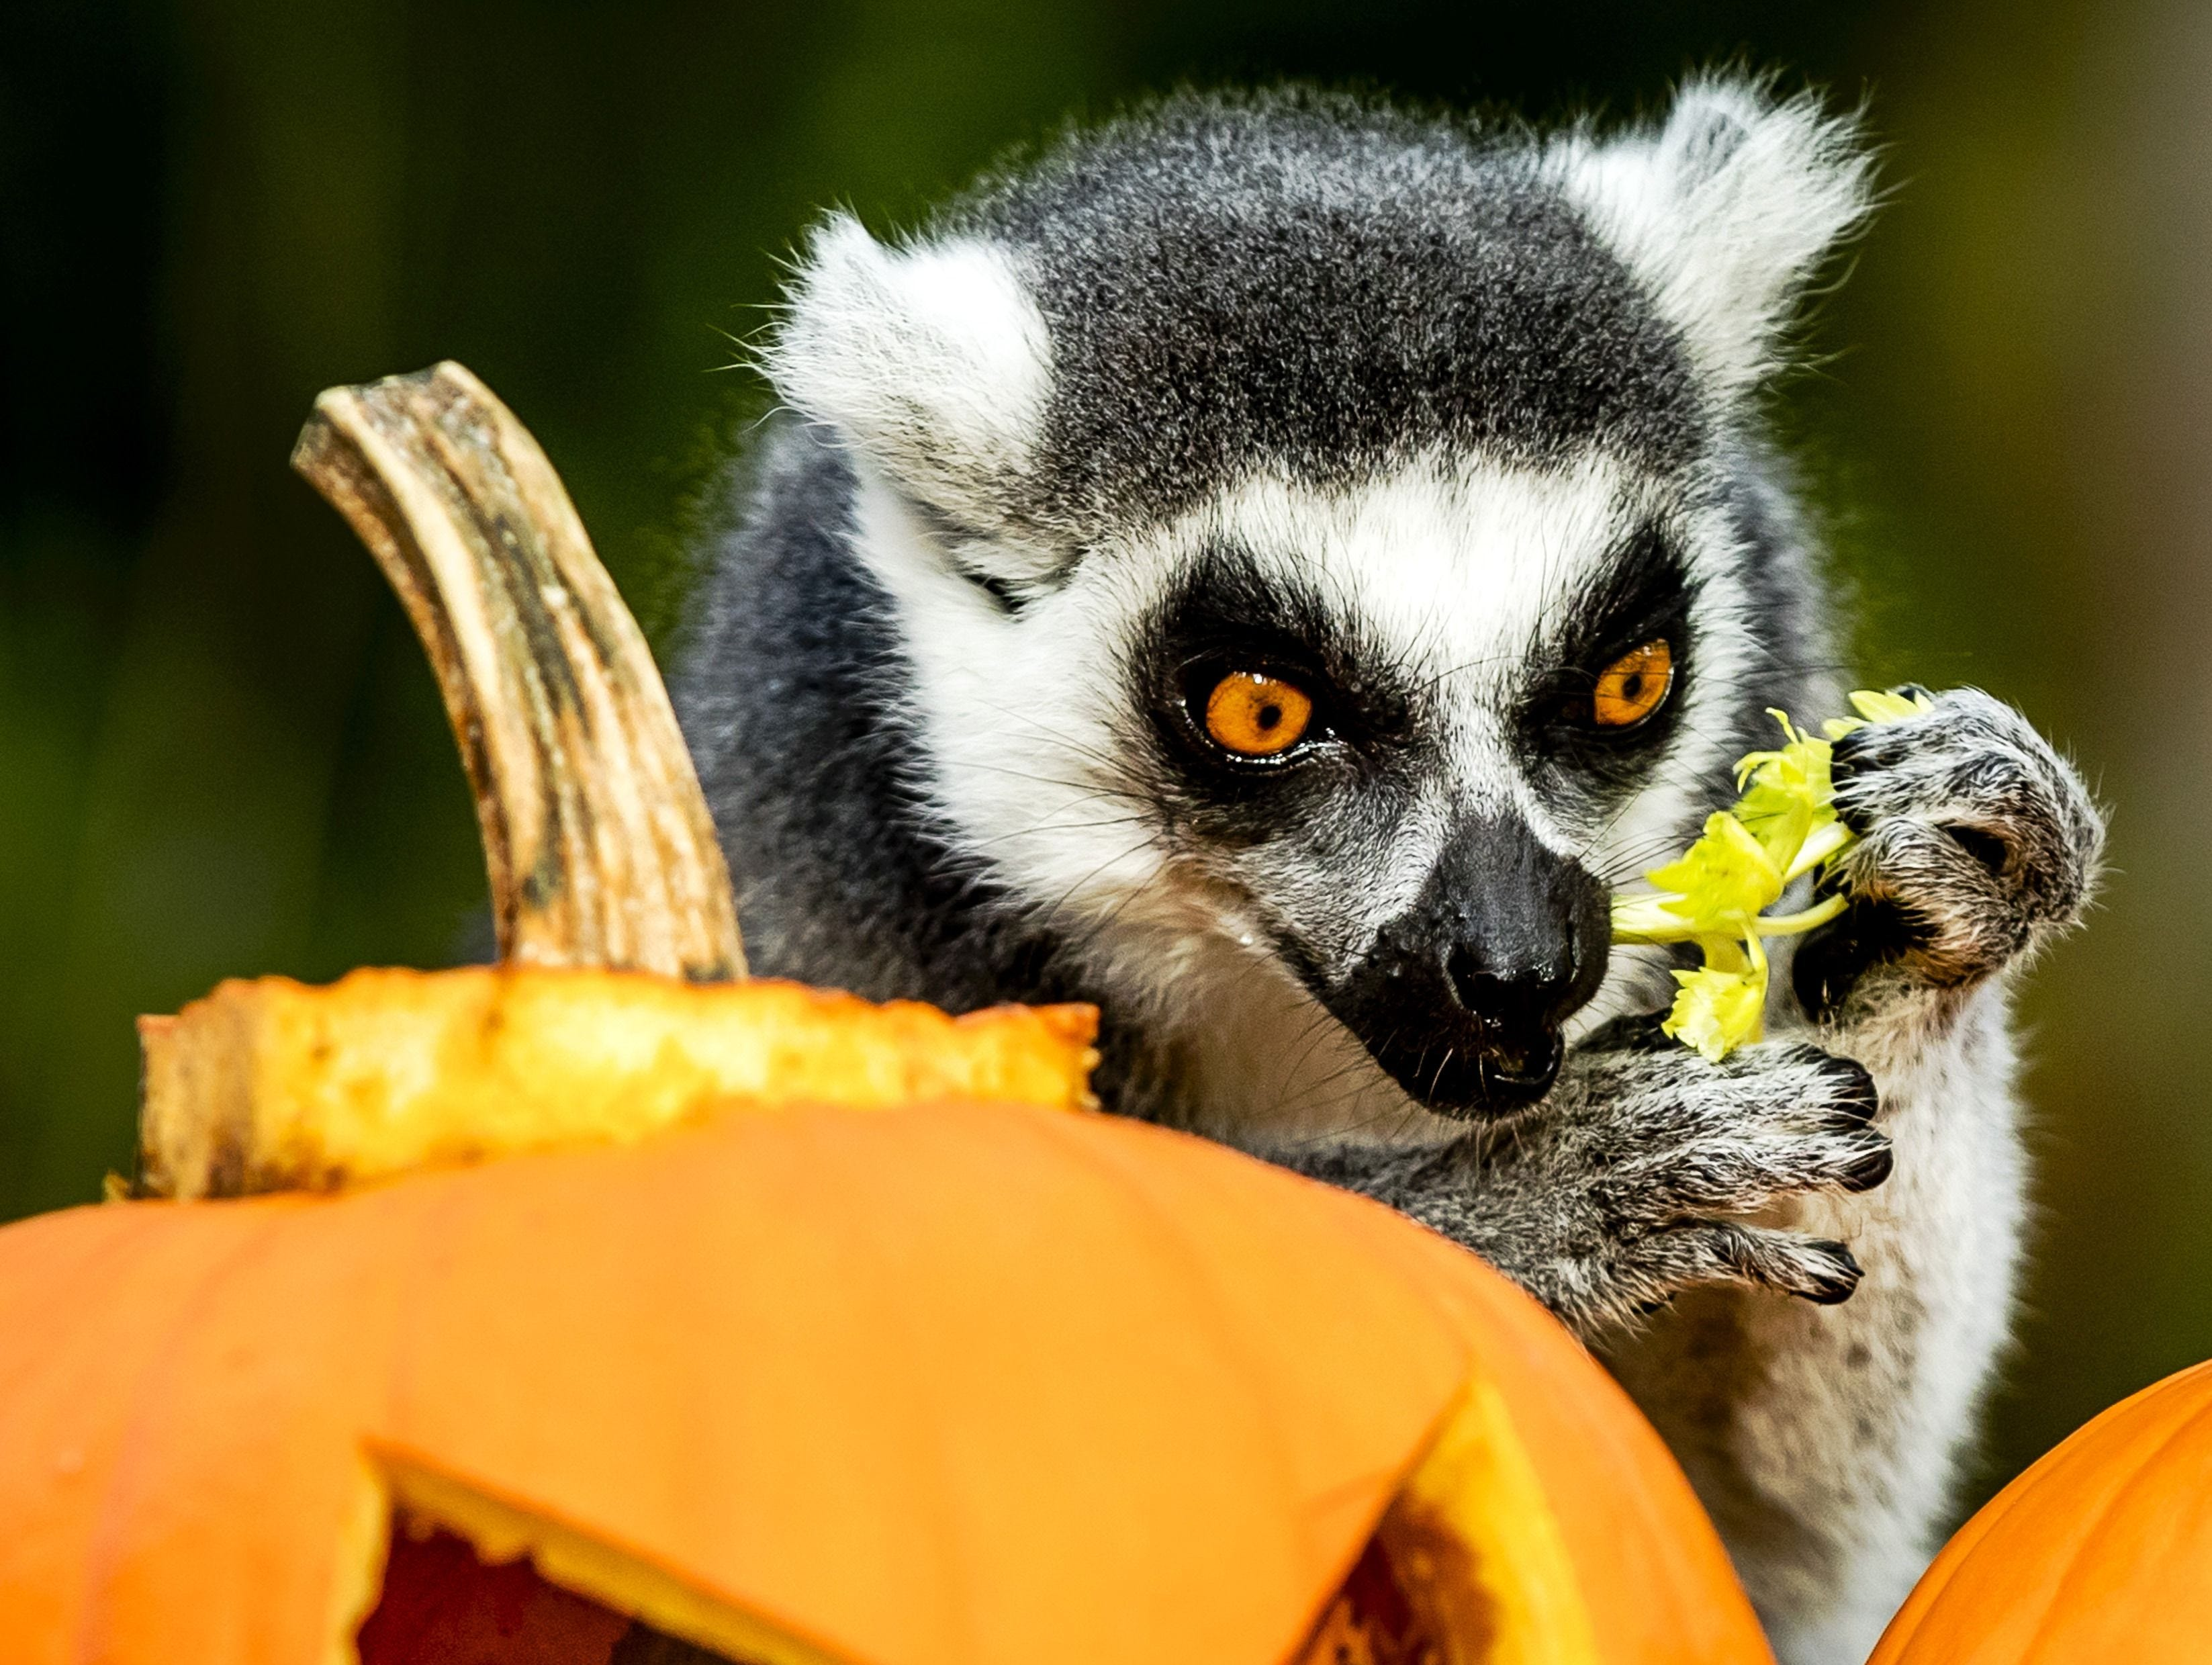 A lemur feeds on vegetables hidden in carved out Halloween pumpkins at the Dierenpark Zoo in Amersfoort, Netherlands, on October 27, 2017.